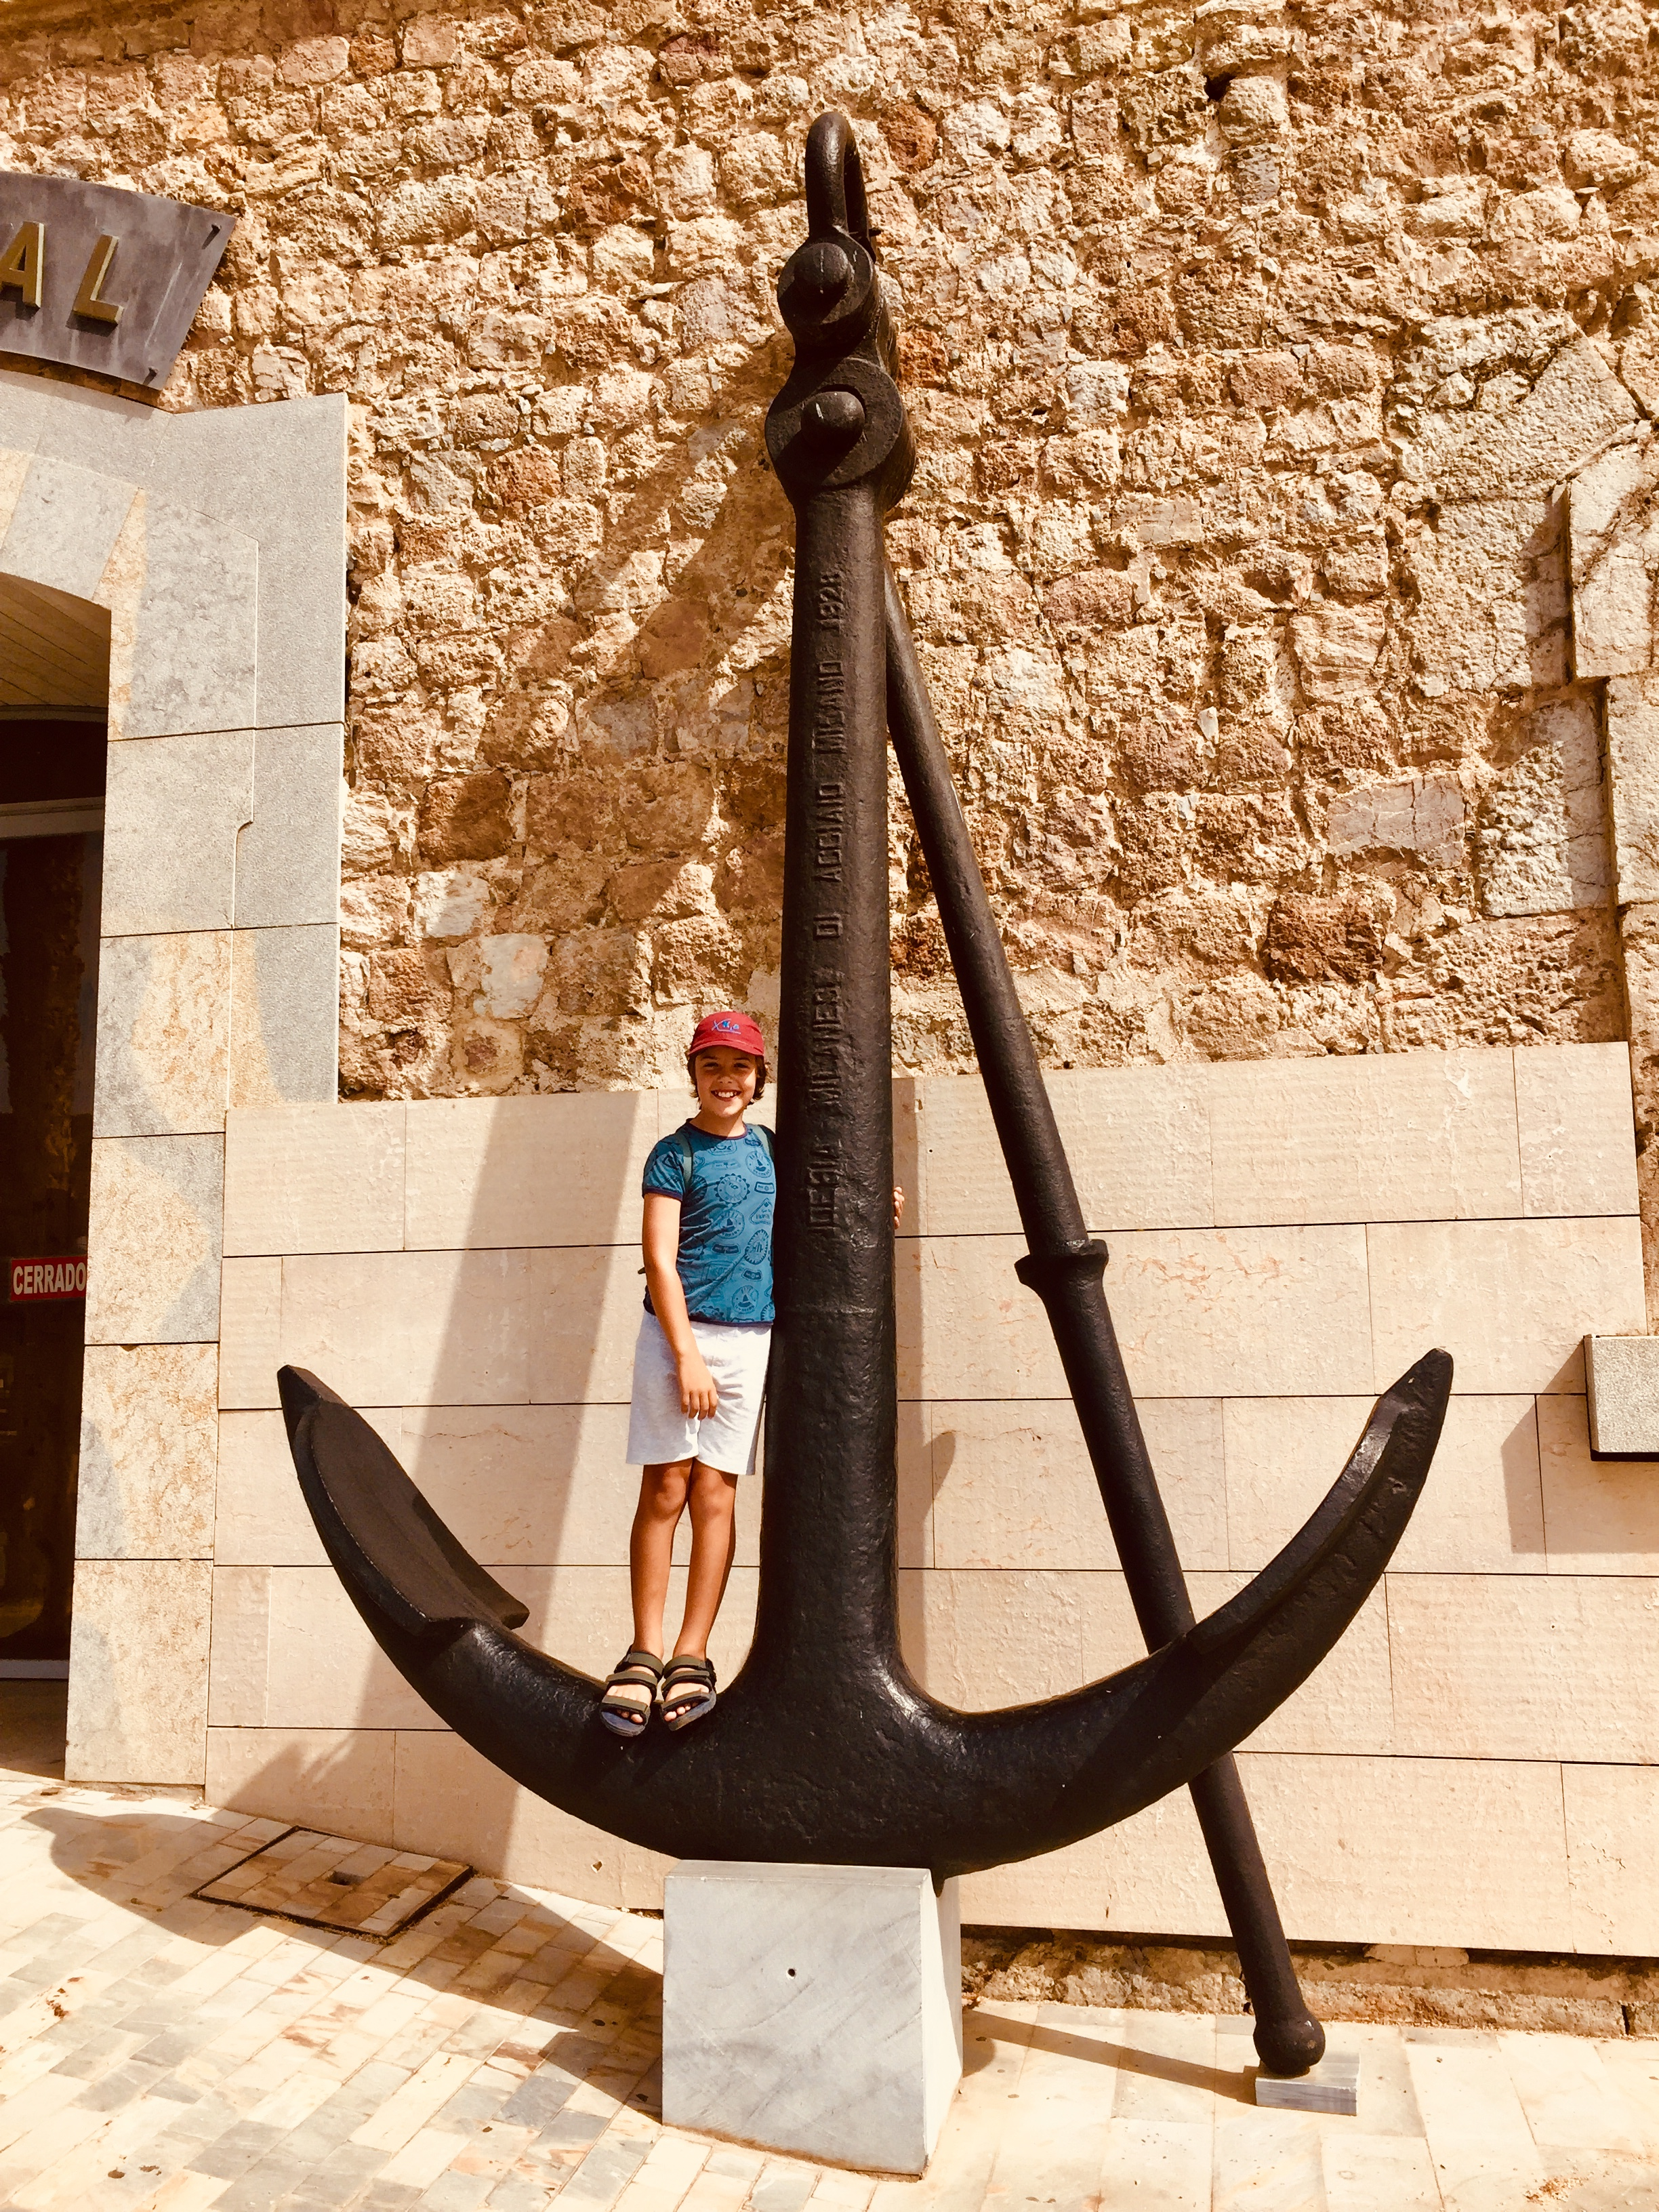 Now that's an anchor